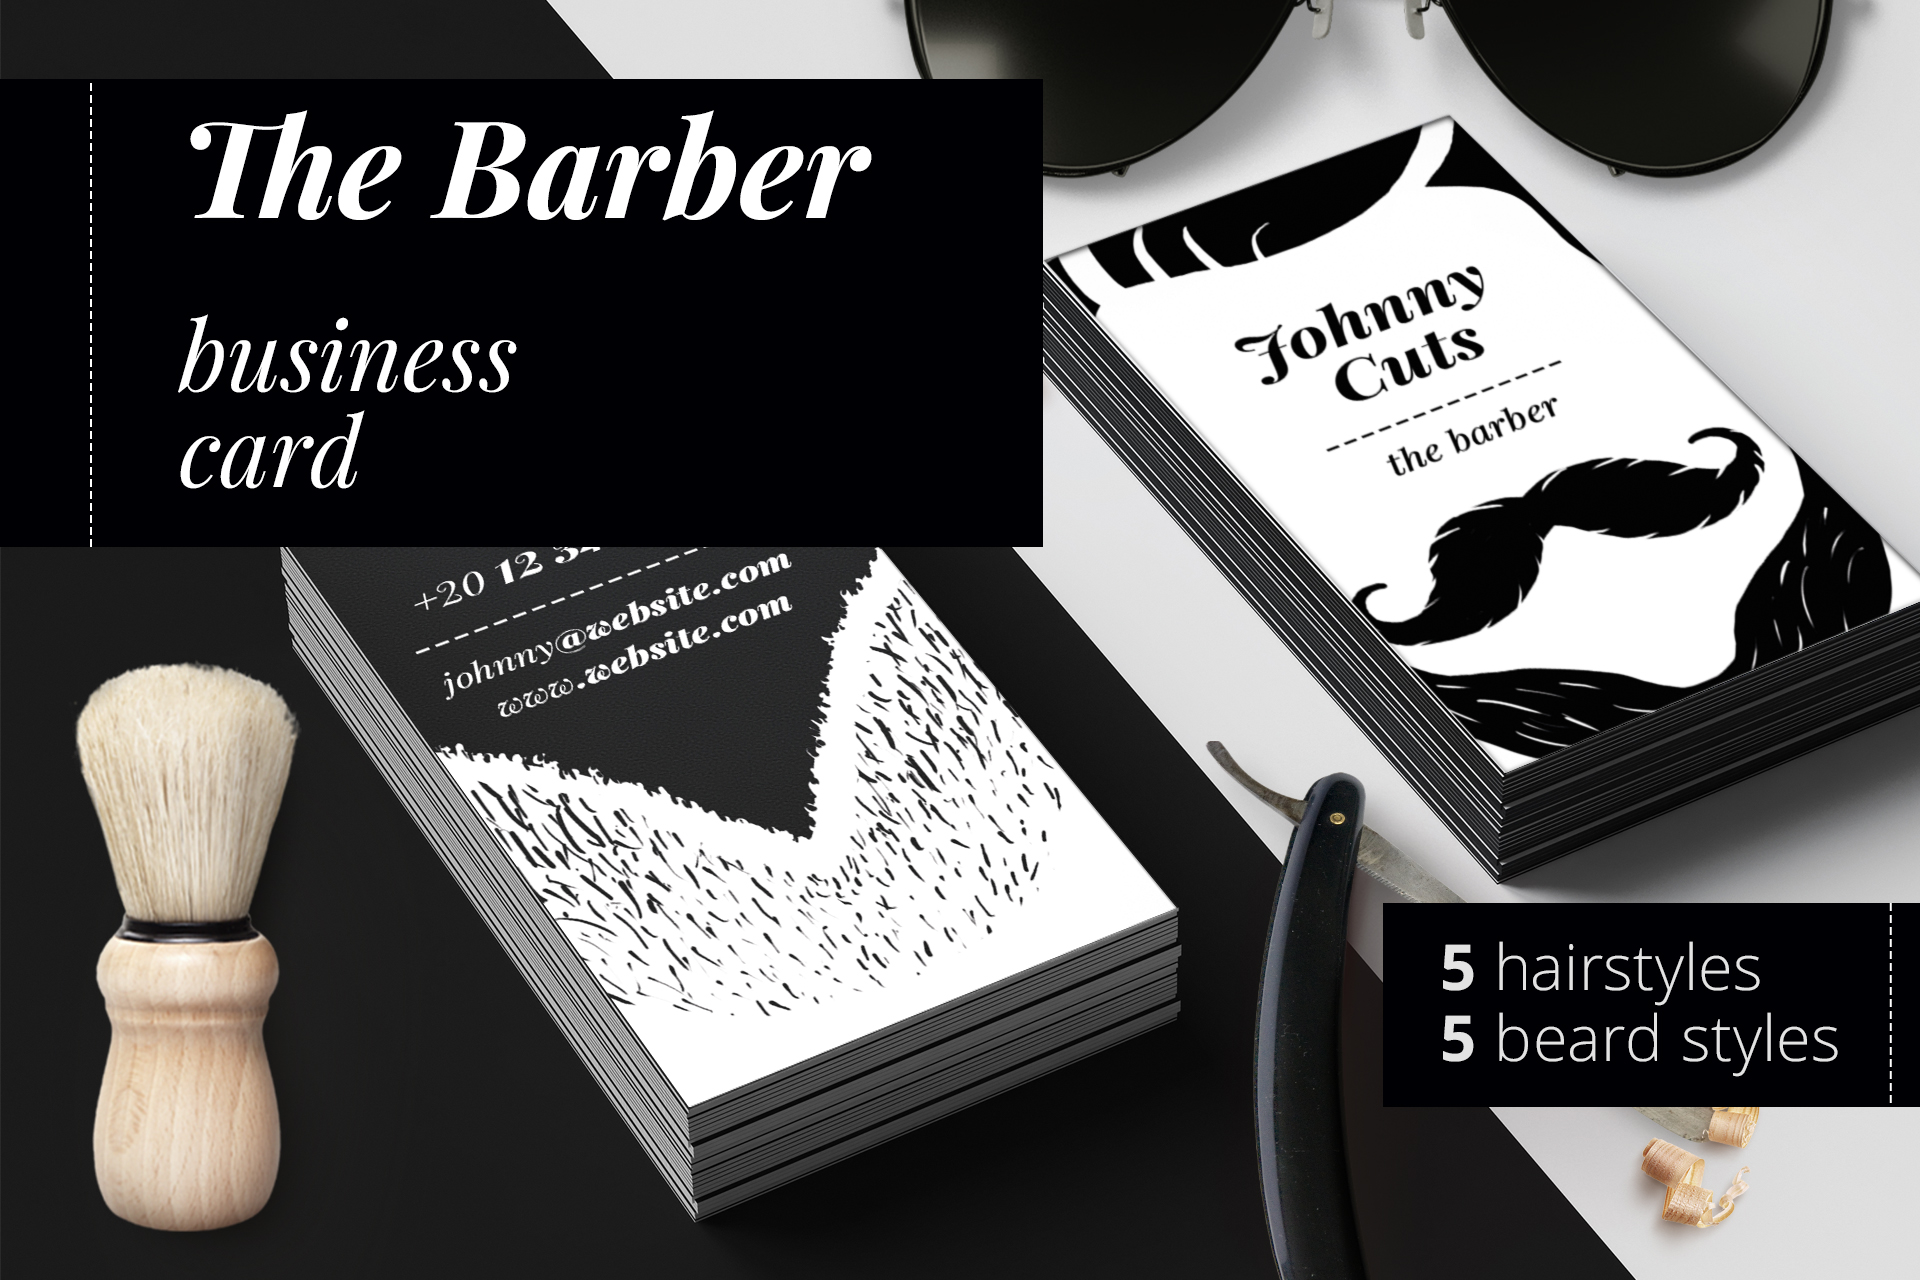 The Barber Business Cards Templates Example Image 1